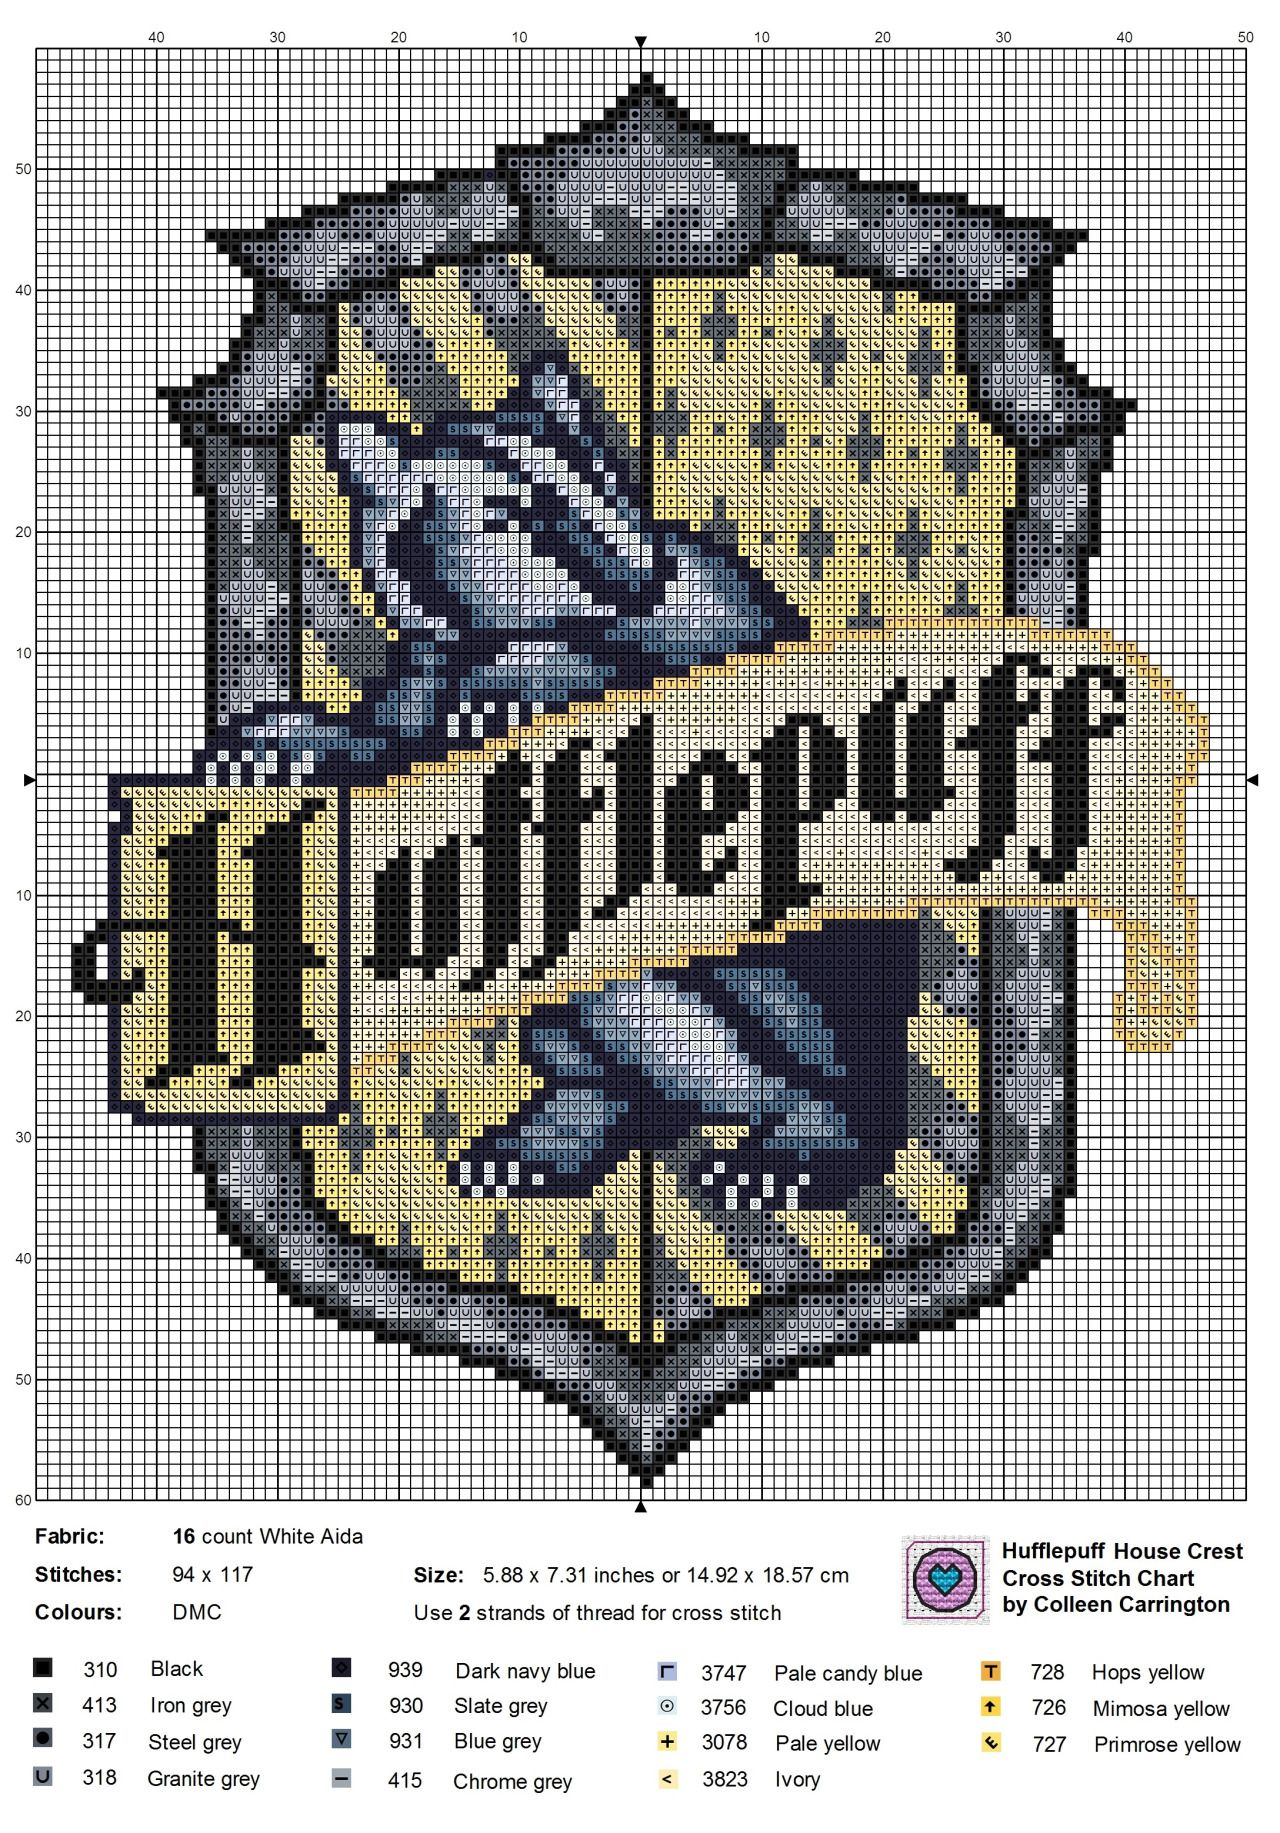 The World In Stitches Harry Potter Cross Stitch Pattern Cross Stitching Cross Stitch